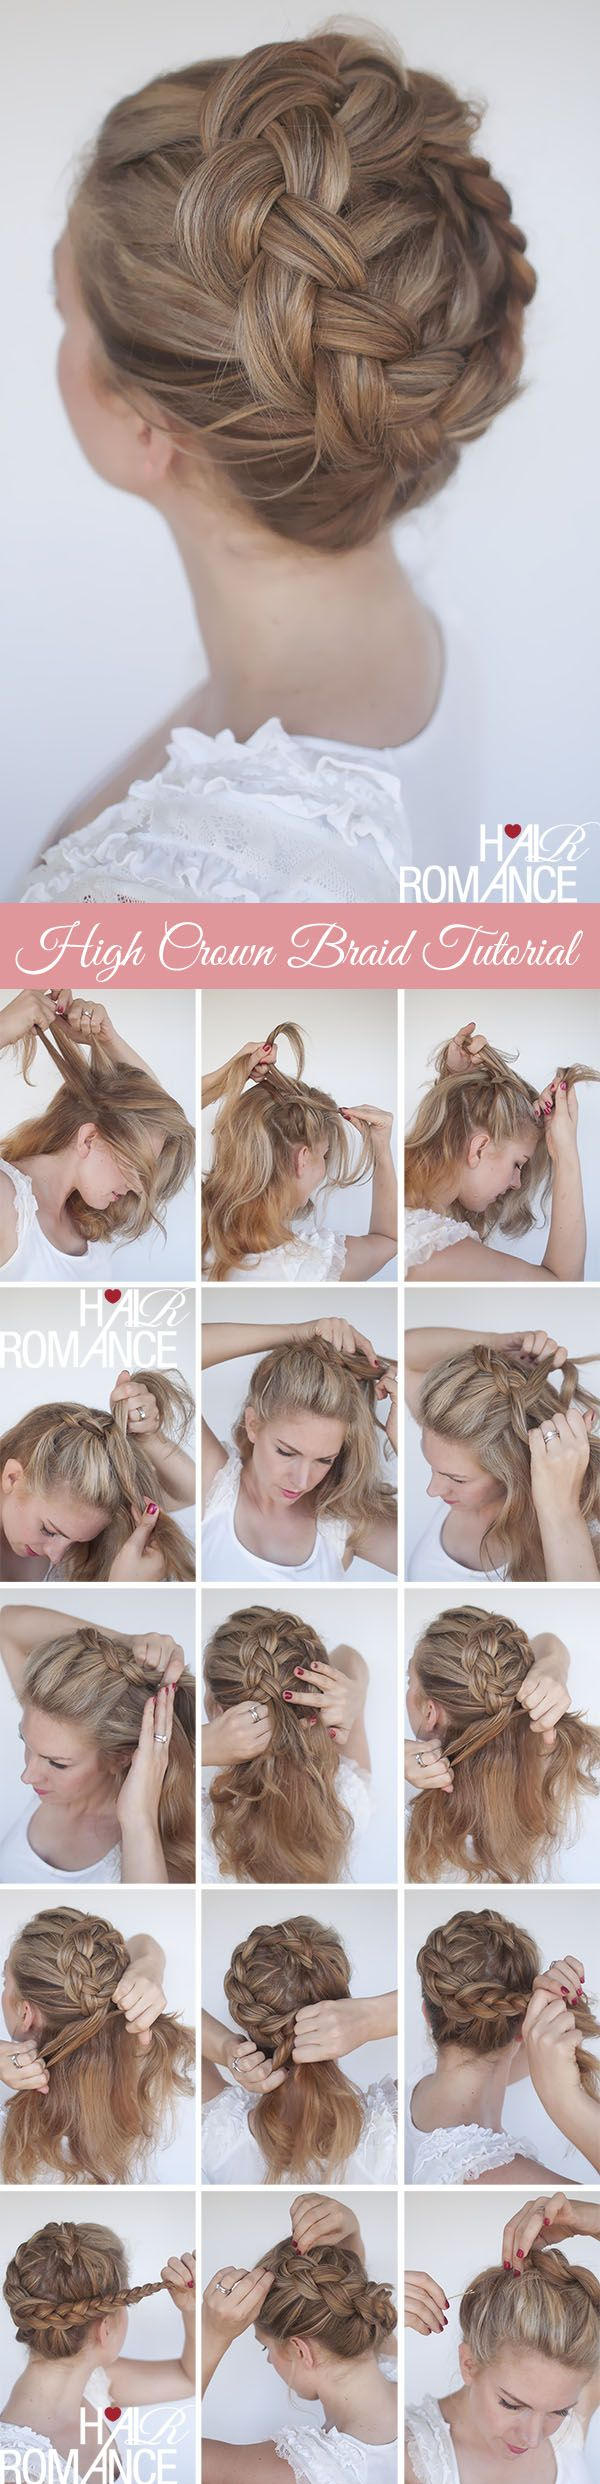 Here's a great tip from this style: To make your hair look thicker, stretch the braid before pinning, gently pulling at its sides to make it look wider, too.